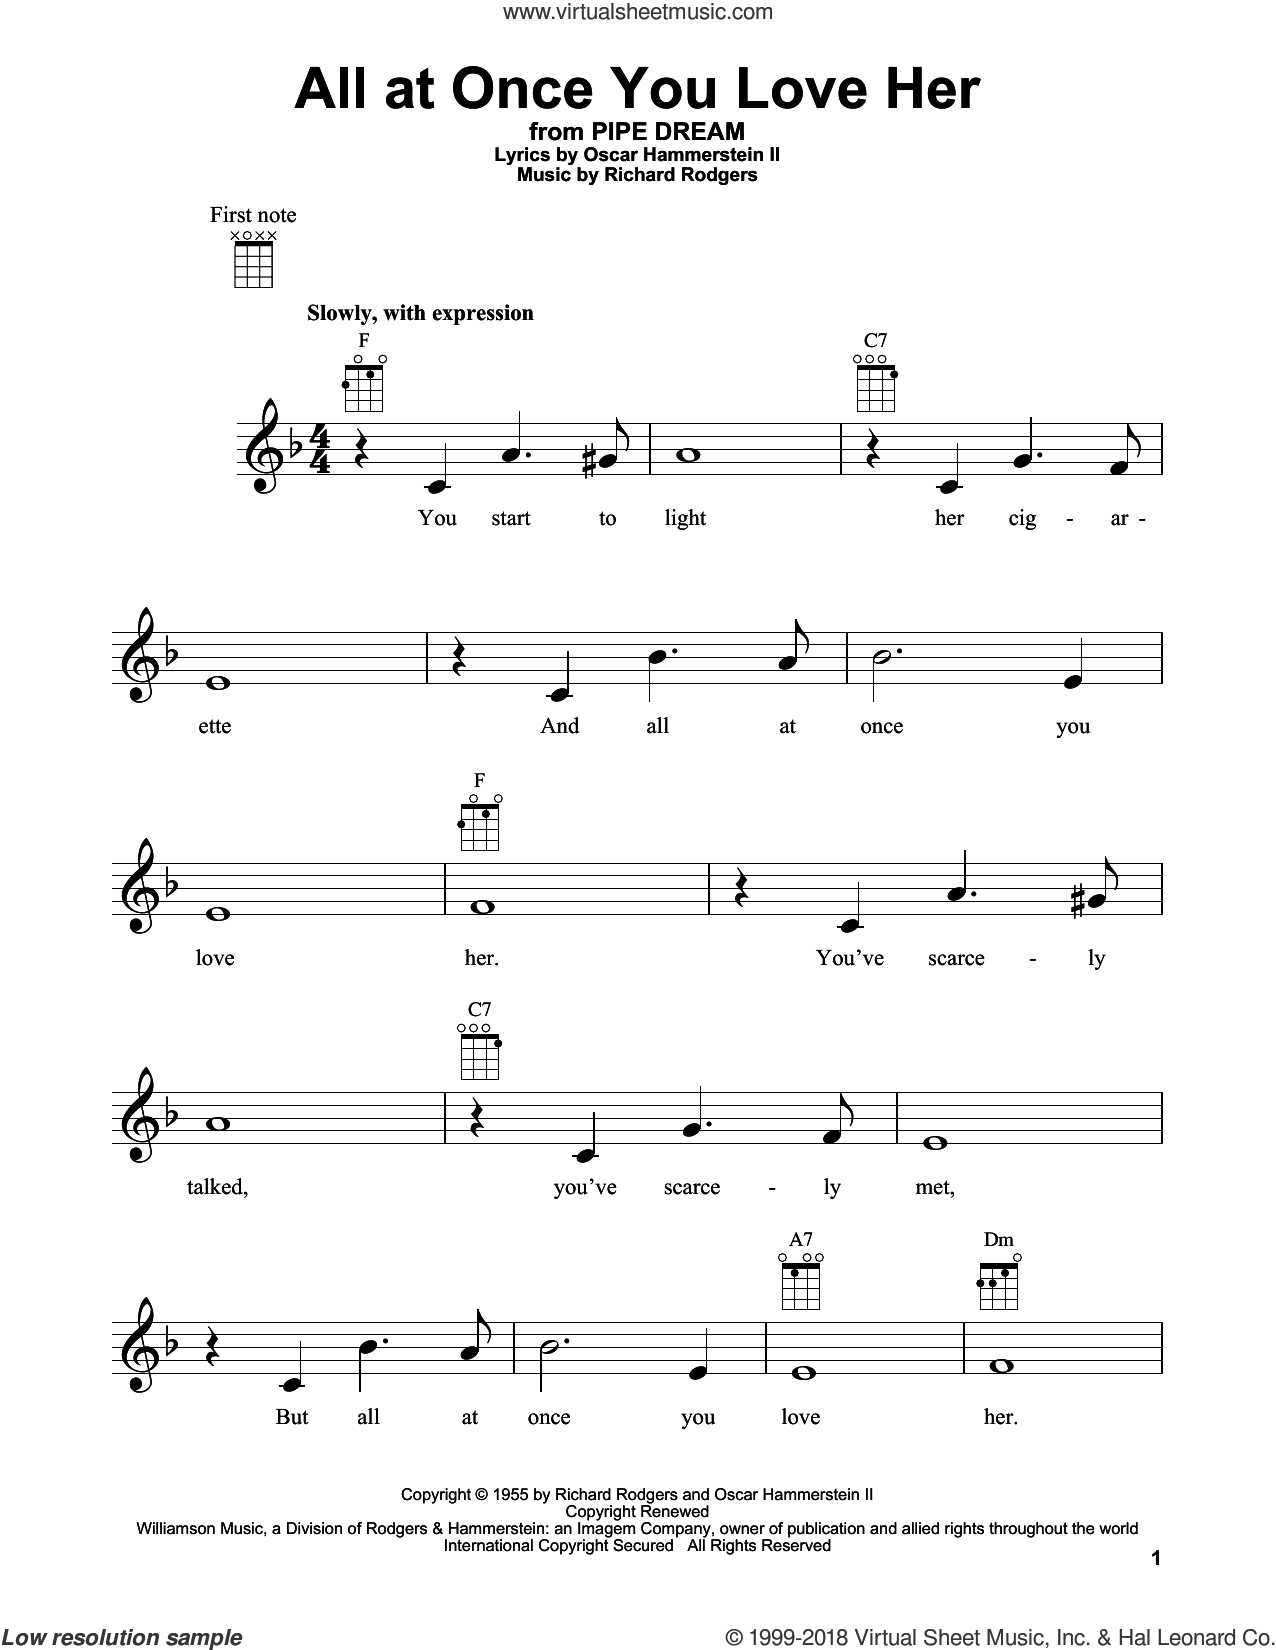 All At Once You Love Her sheet music for ukulele by Perry Como, Pipe Dream (Musical), Rodgers & Hammerstein, Oscar II Hammerstein and Richard Rodgers, intermediate skill level